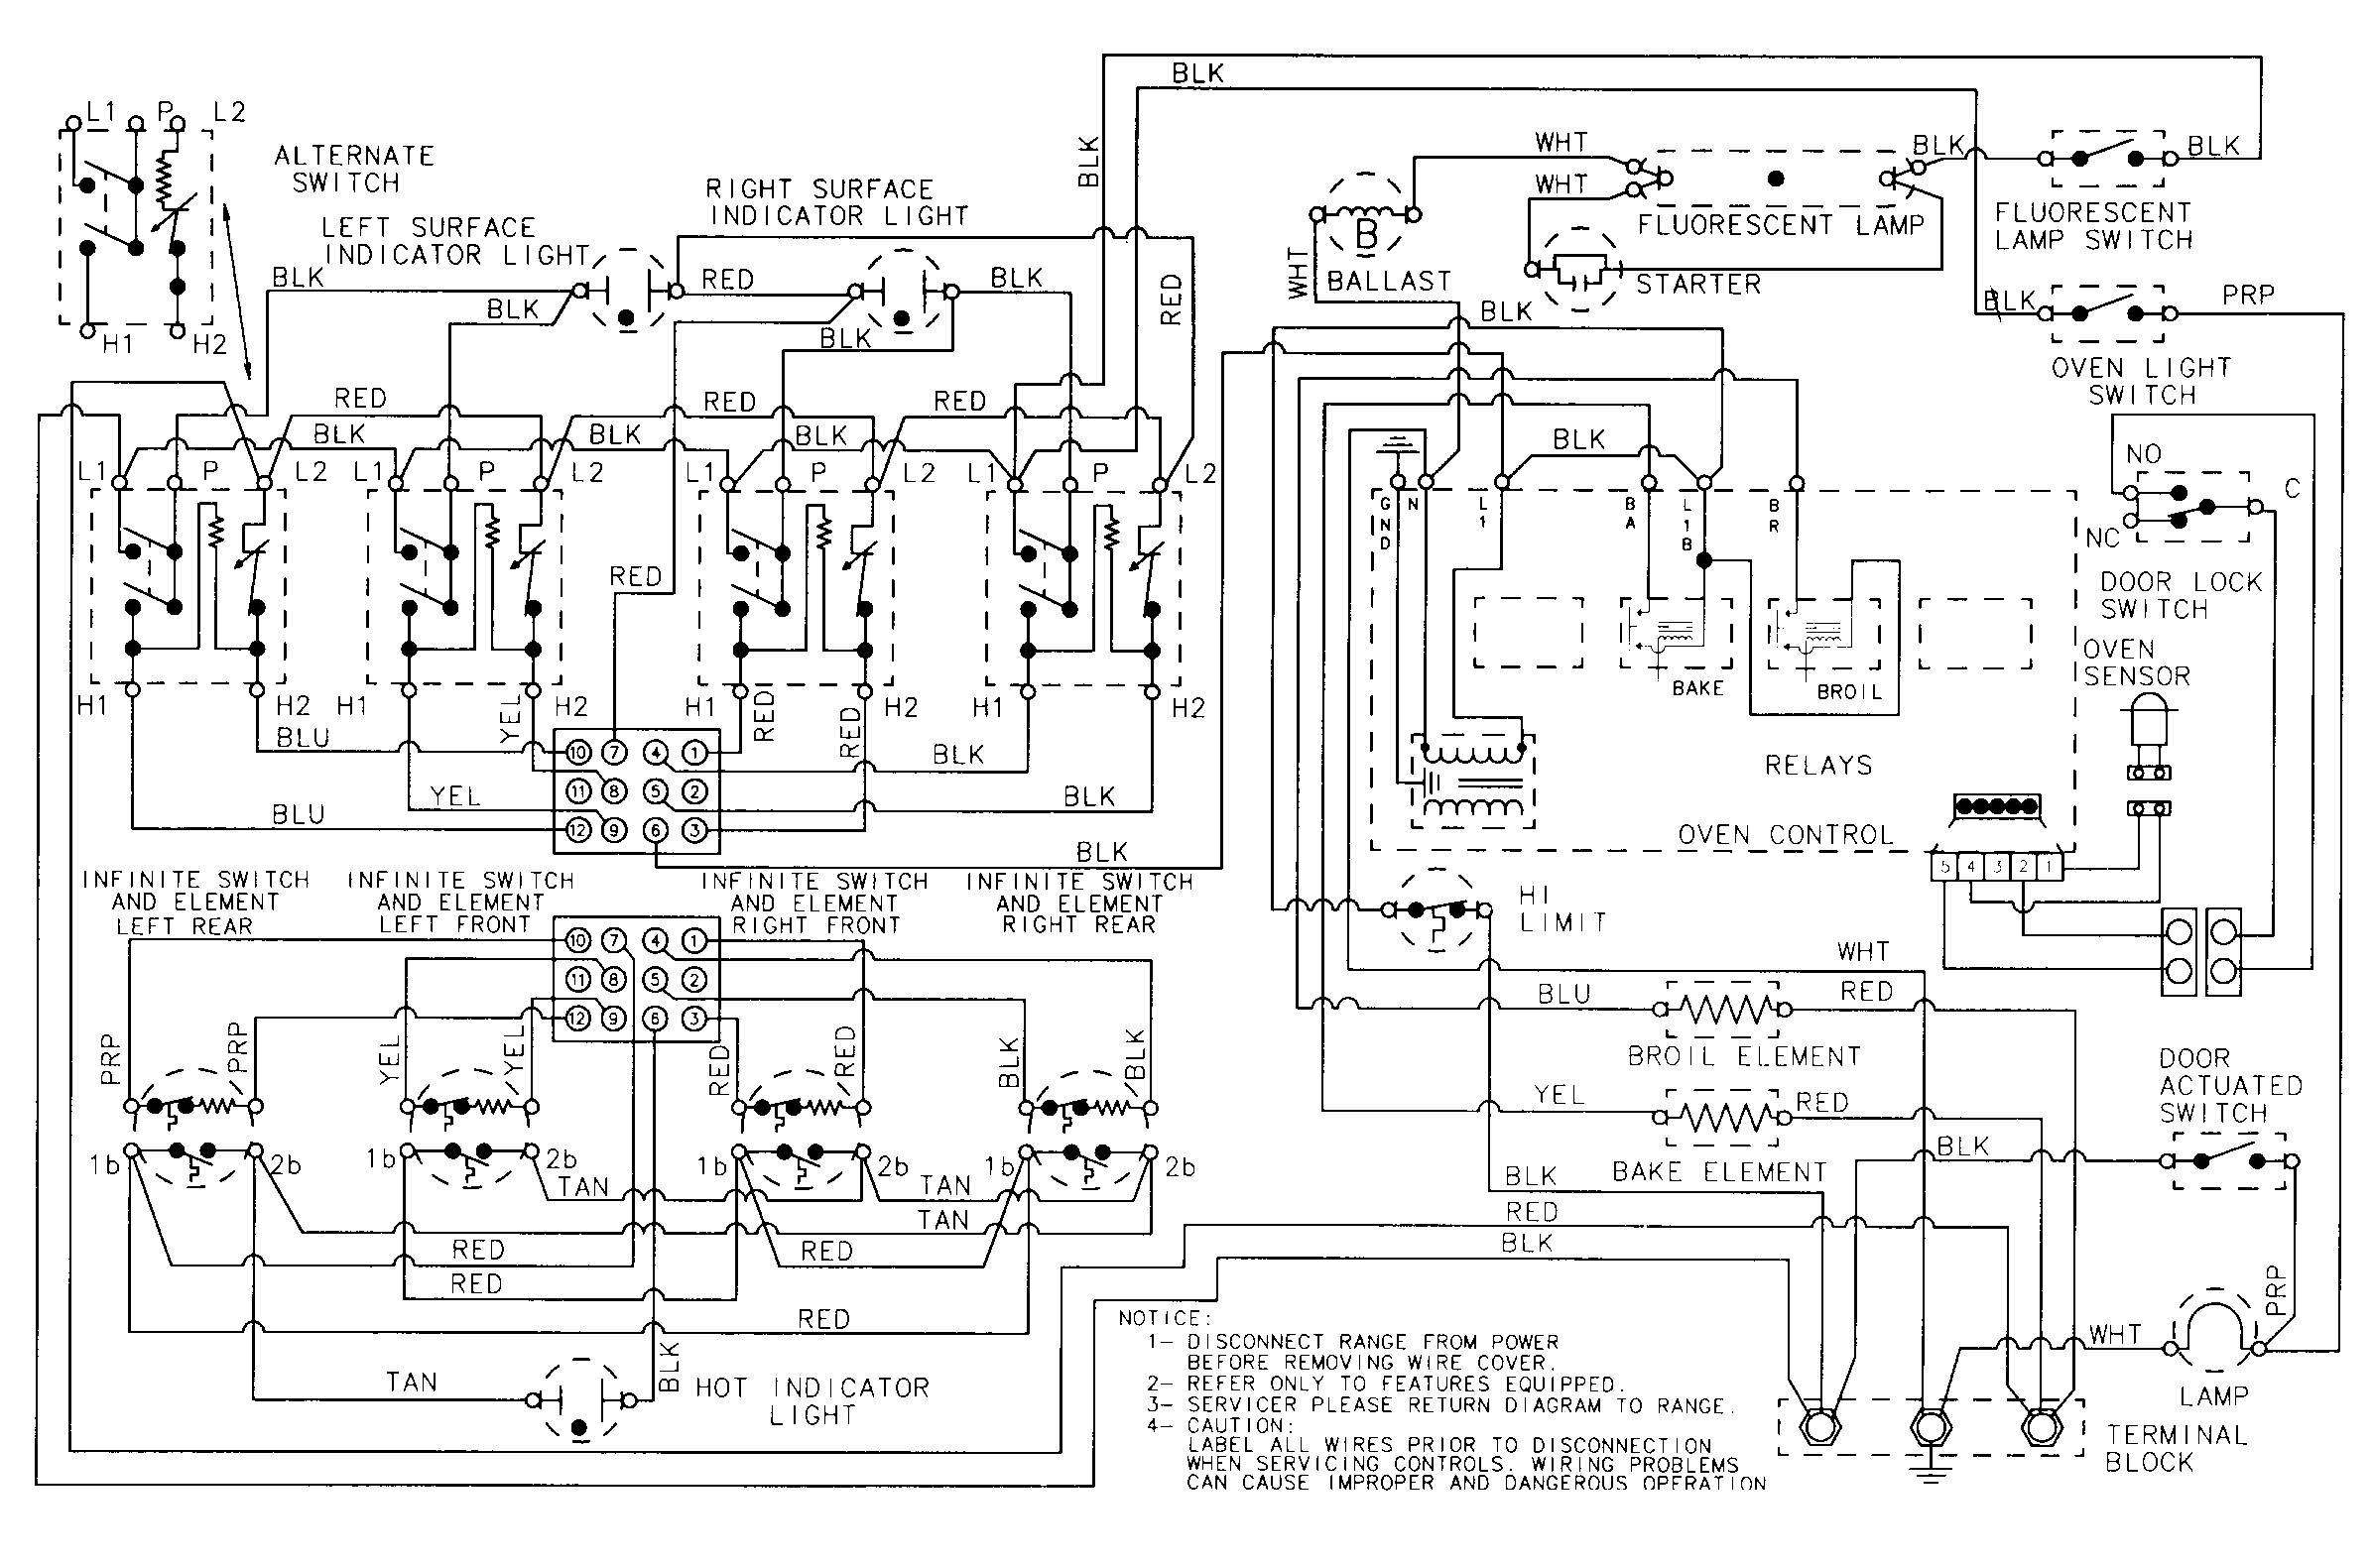 whirlpool dishwasher wiring diagram Download-Dishwasher Wiring Diagram Best Dishwasher Parts Diagram Beautiful Whirlpool Dishwasher Kudc25chss1 4-n